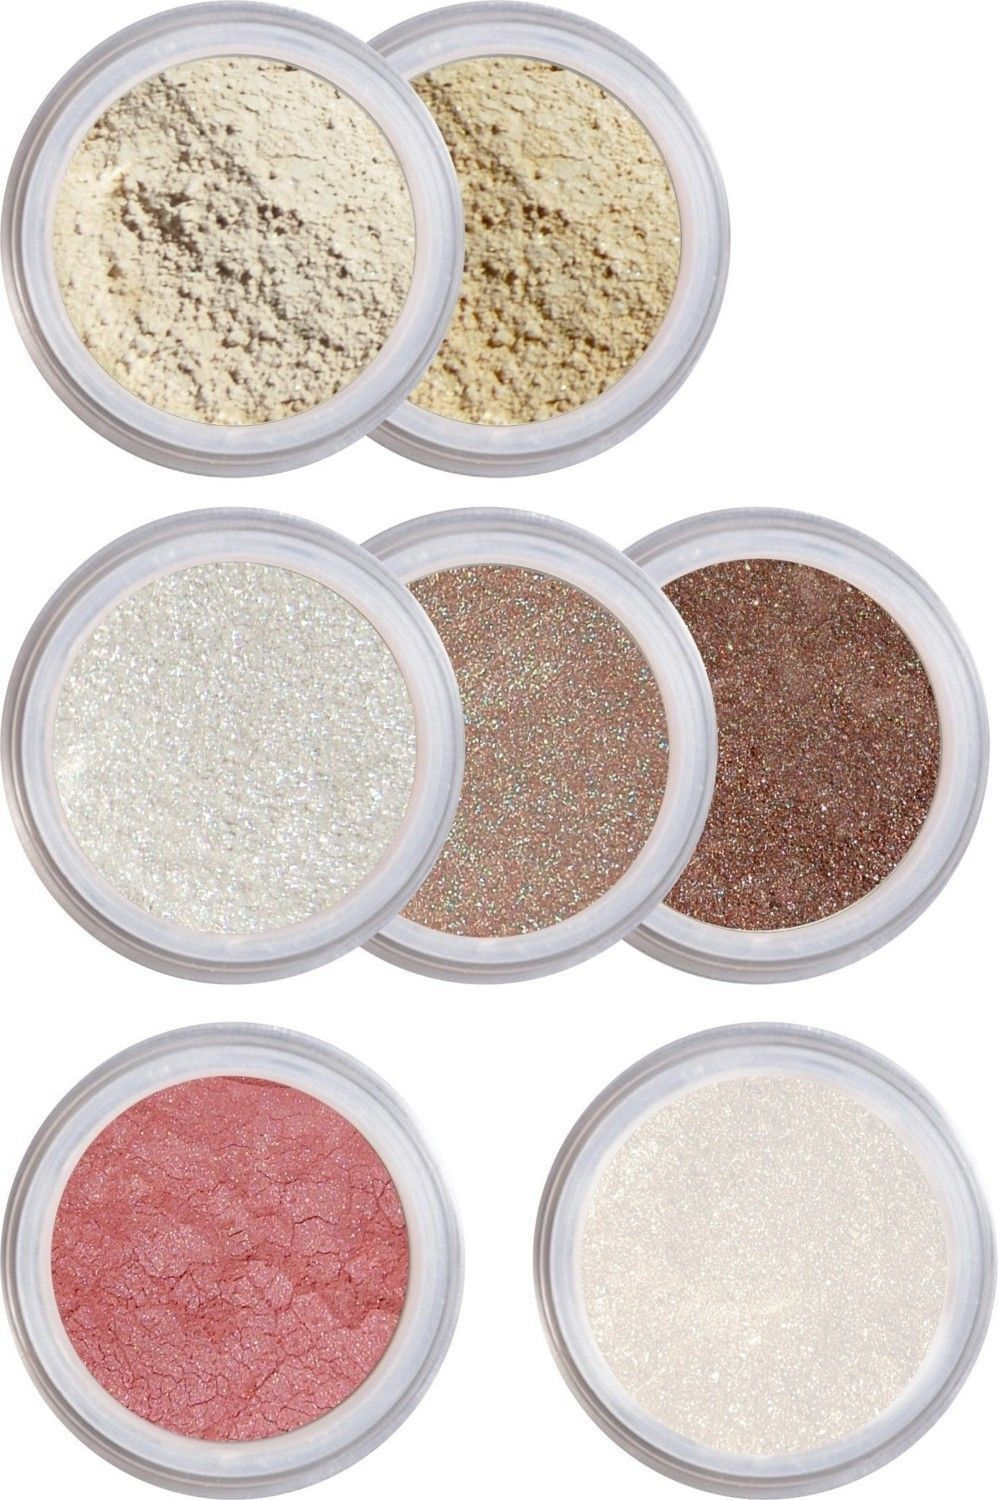 Getting Started Kit, Fair Minerals makeup, Natural